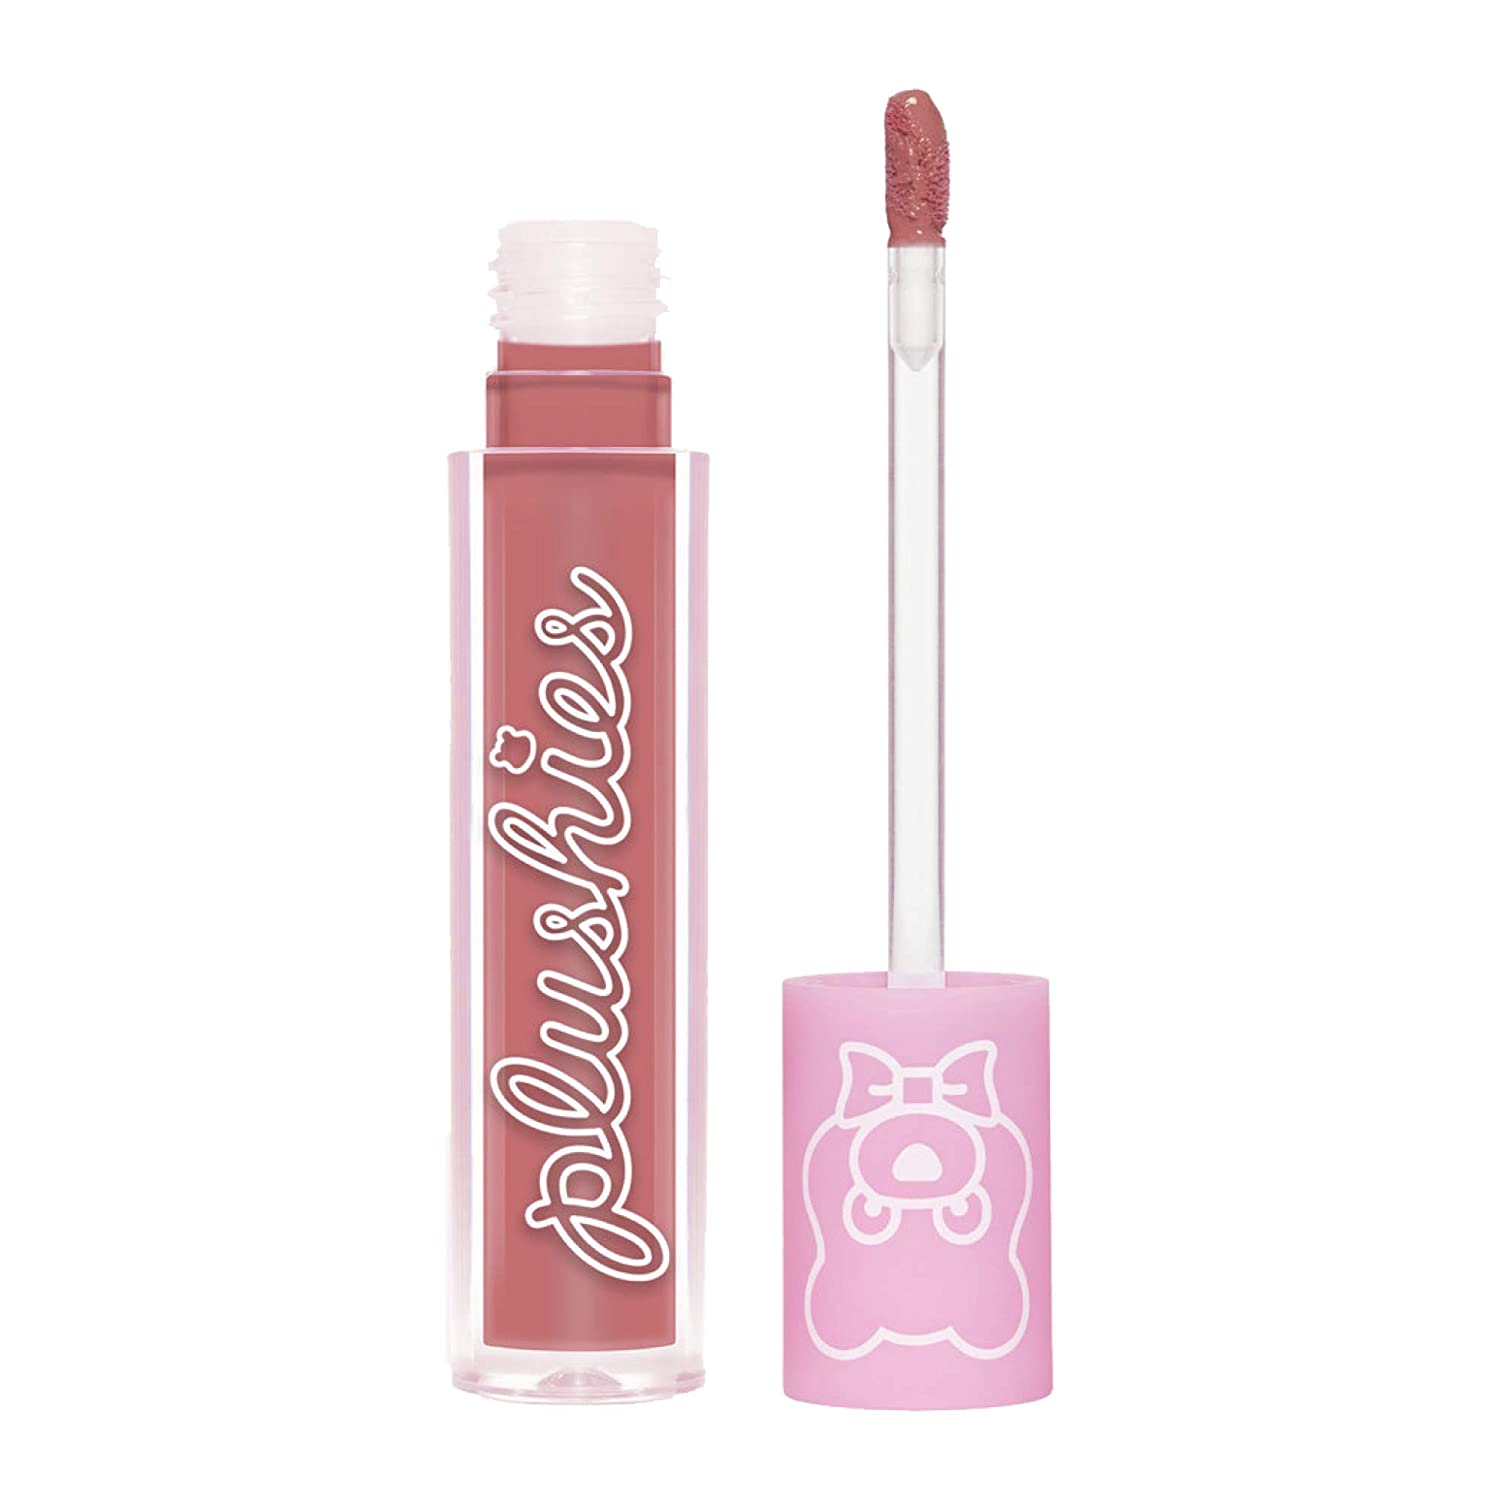 Lime Crime Plushies Soft Matte Lipstick, Turkish Delight - Sheer Dusty Rose - Blackberry Candy Scent - Long Lasting, Nude Lips - Soft Focus, Non-Opaque Lip Veil - 0.11 fl oz